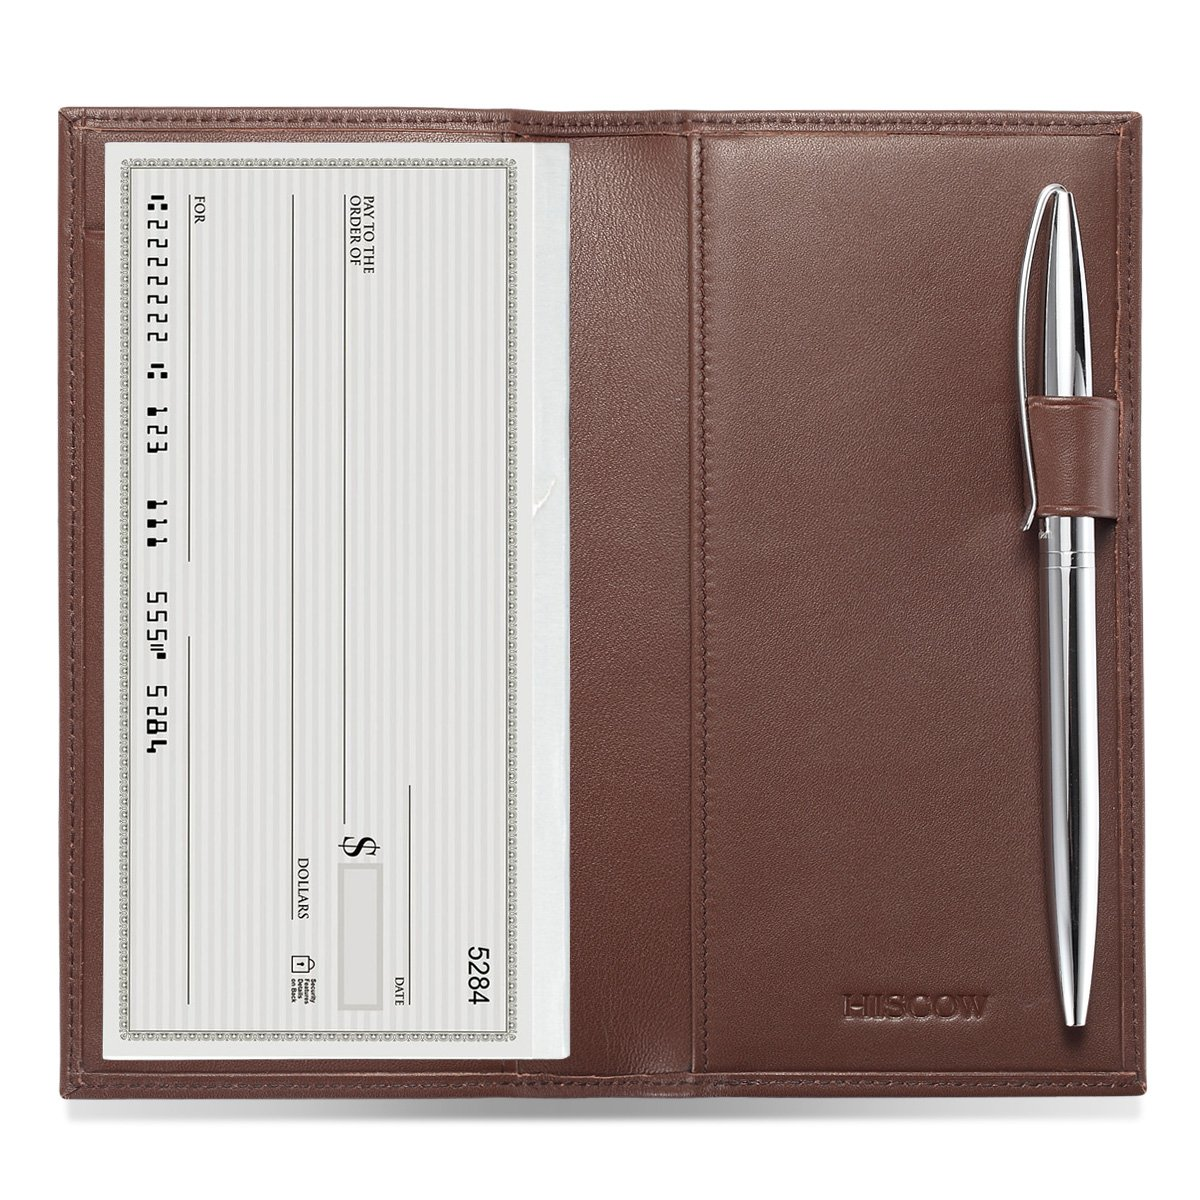 HISCOW Supple Leather Checkbook Cover with Free Divider - Italian Calfskin (Brown)